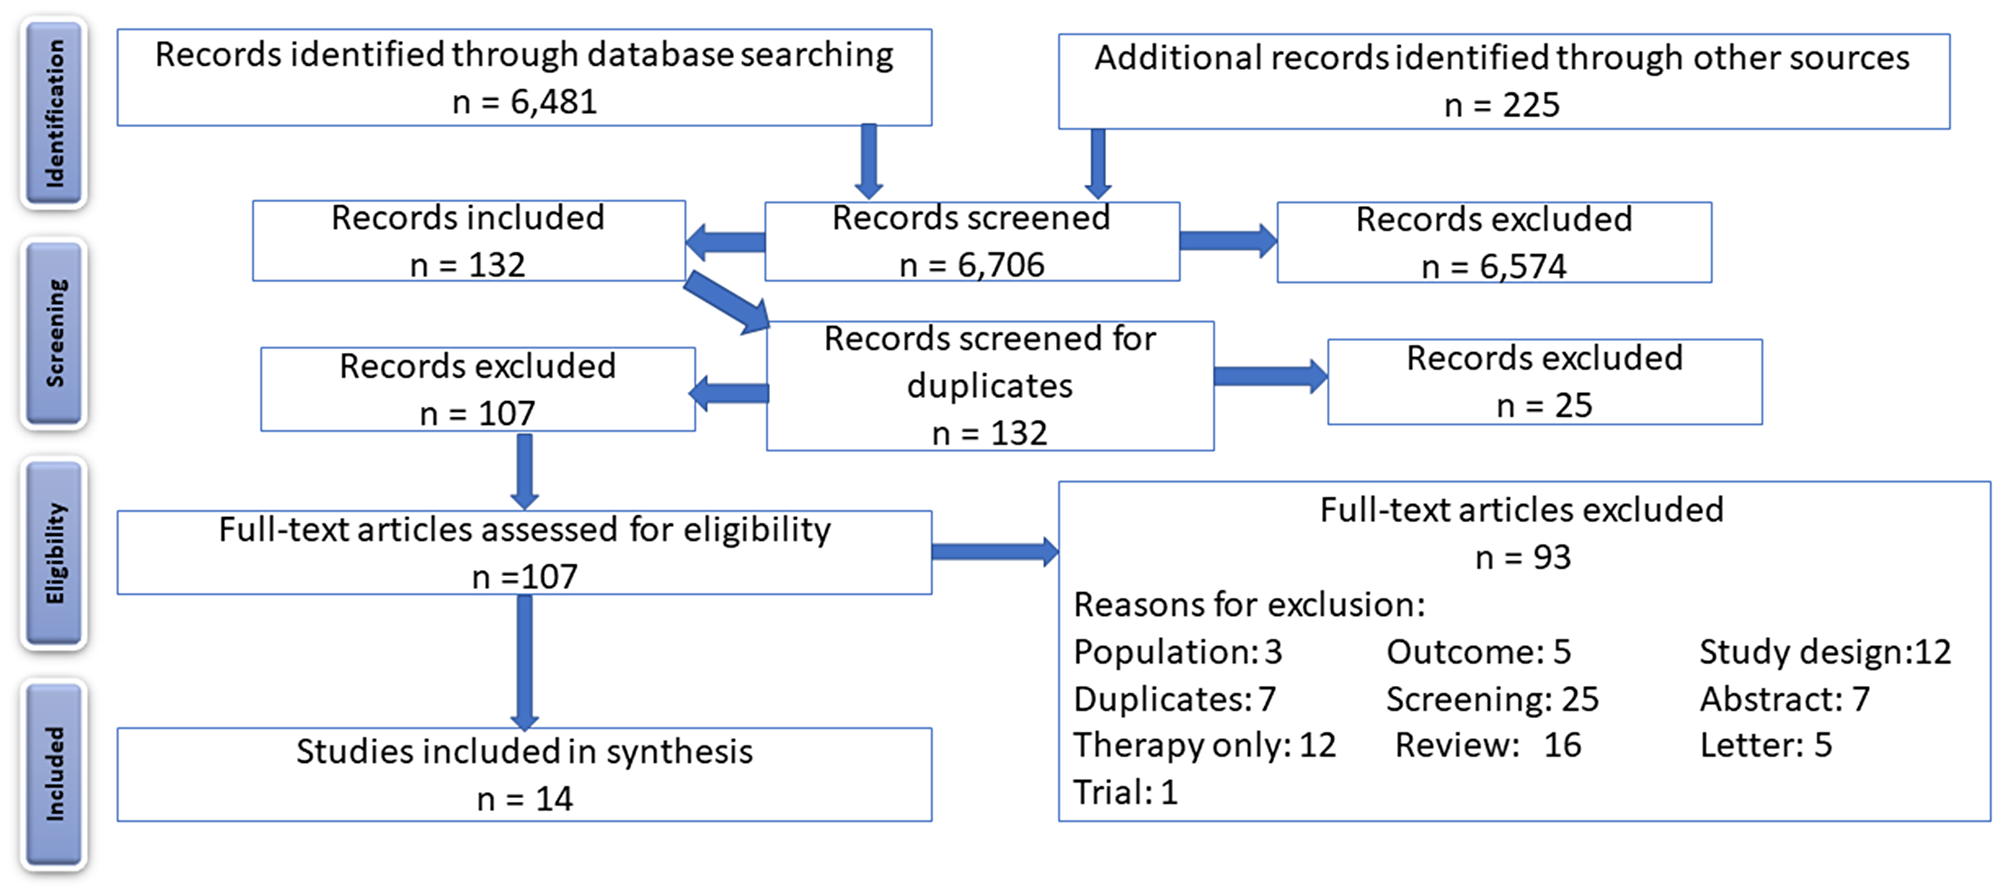 PRISMA flow diagram, showing the flow of identified records through screening, assessment for eligibility, and inclusion.